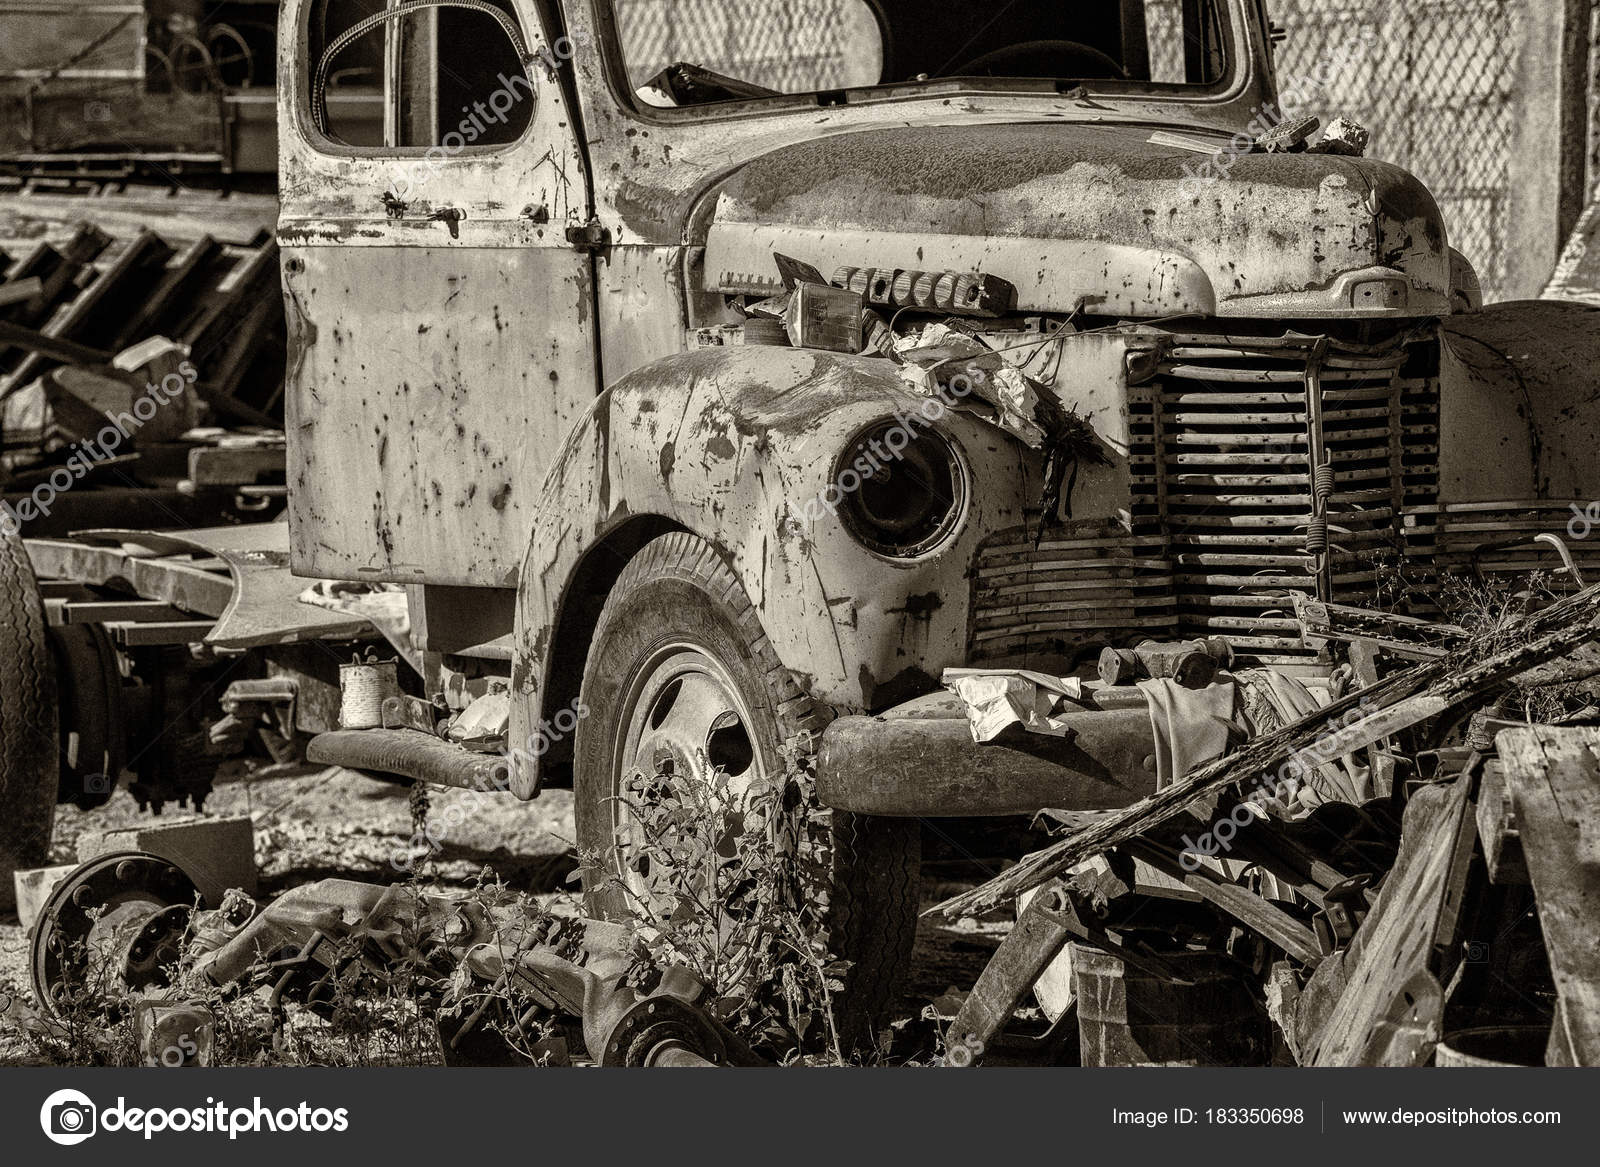 old abandoned rusted truck in b&w — Stock Photo © izanbar #183350698